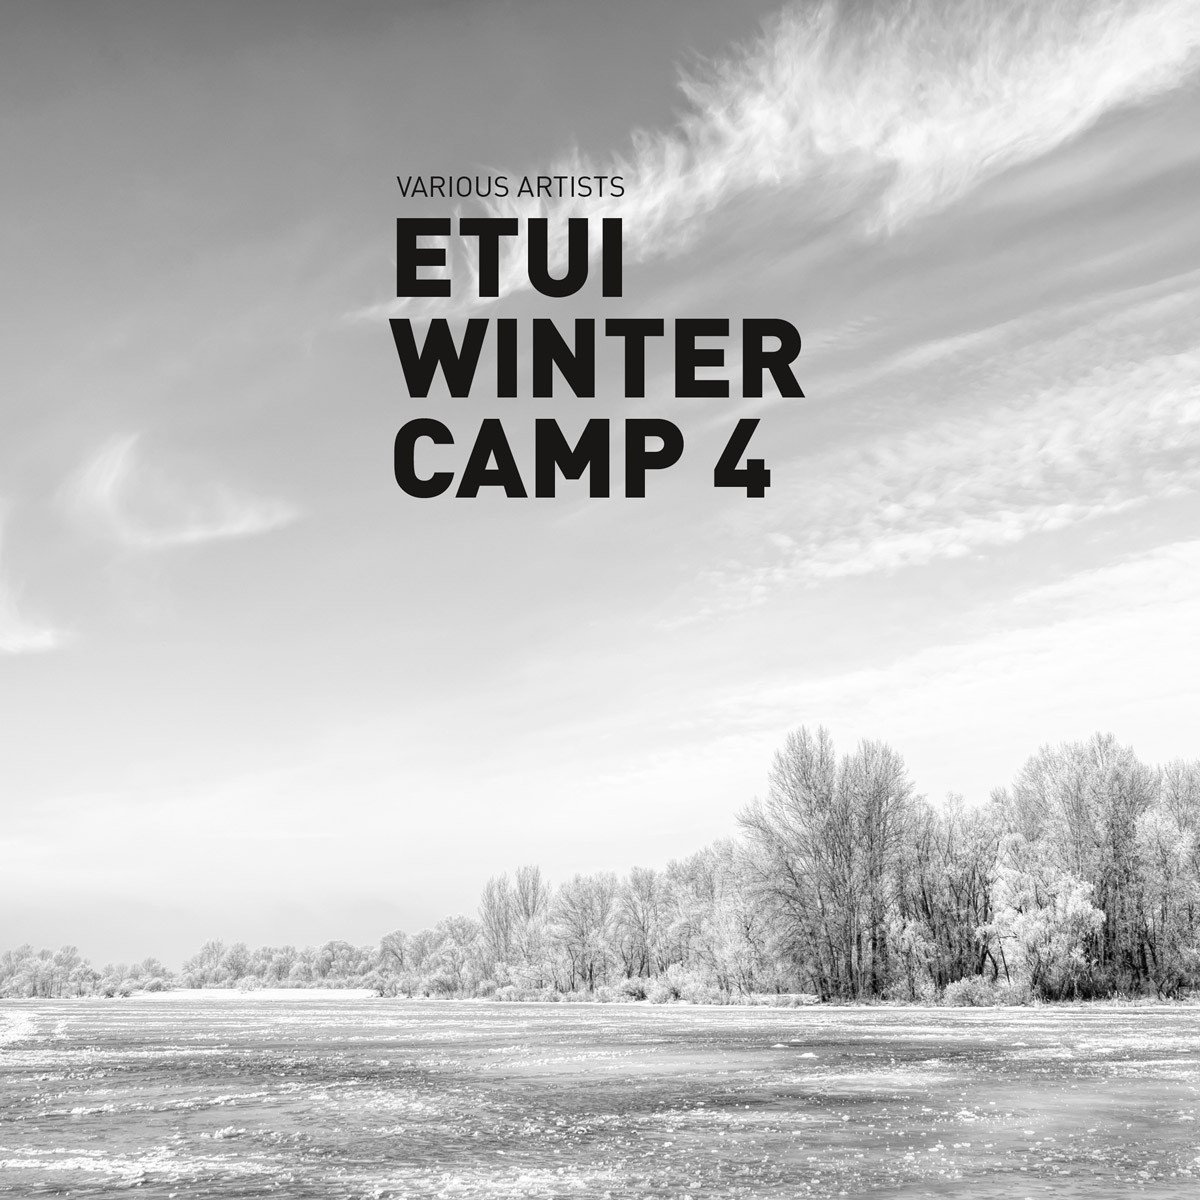 Various Artists - Etui Winter Camp 4